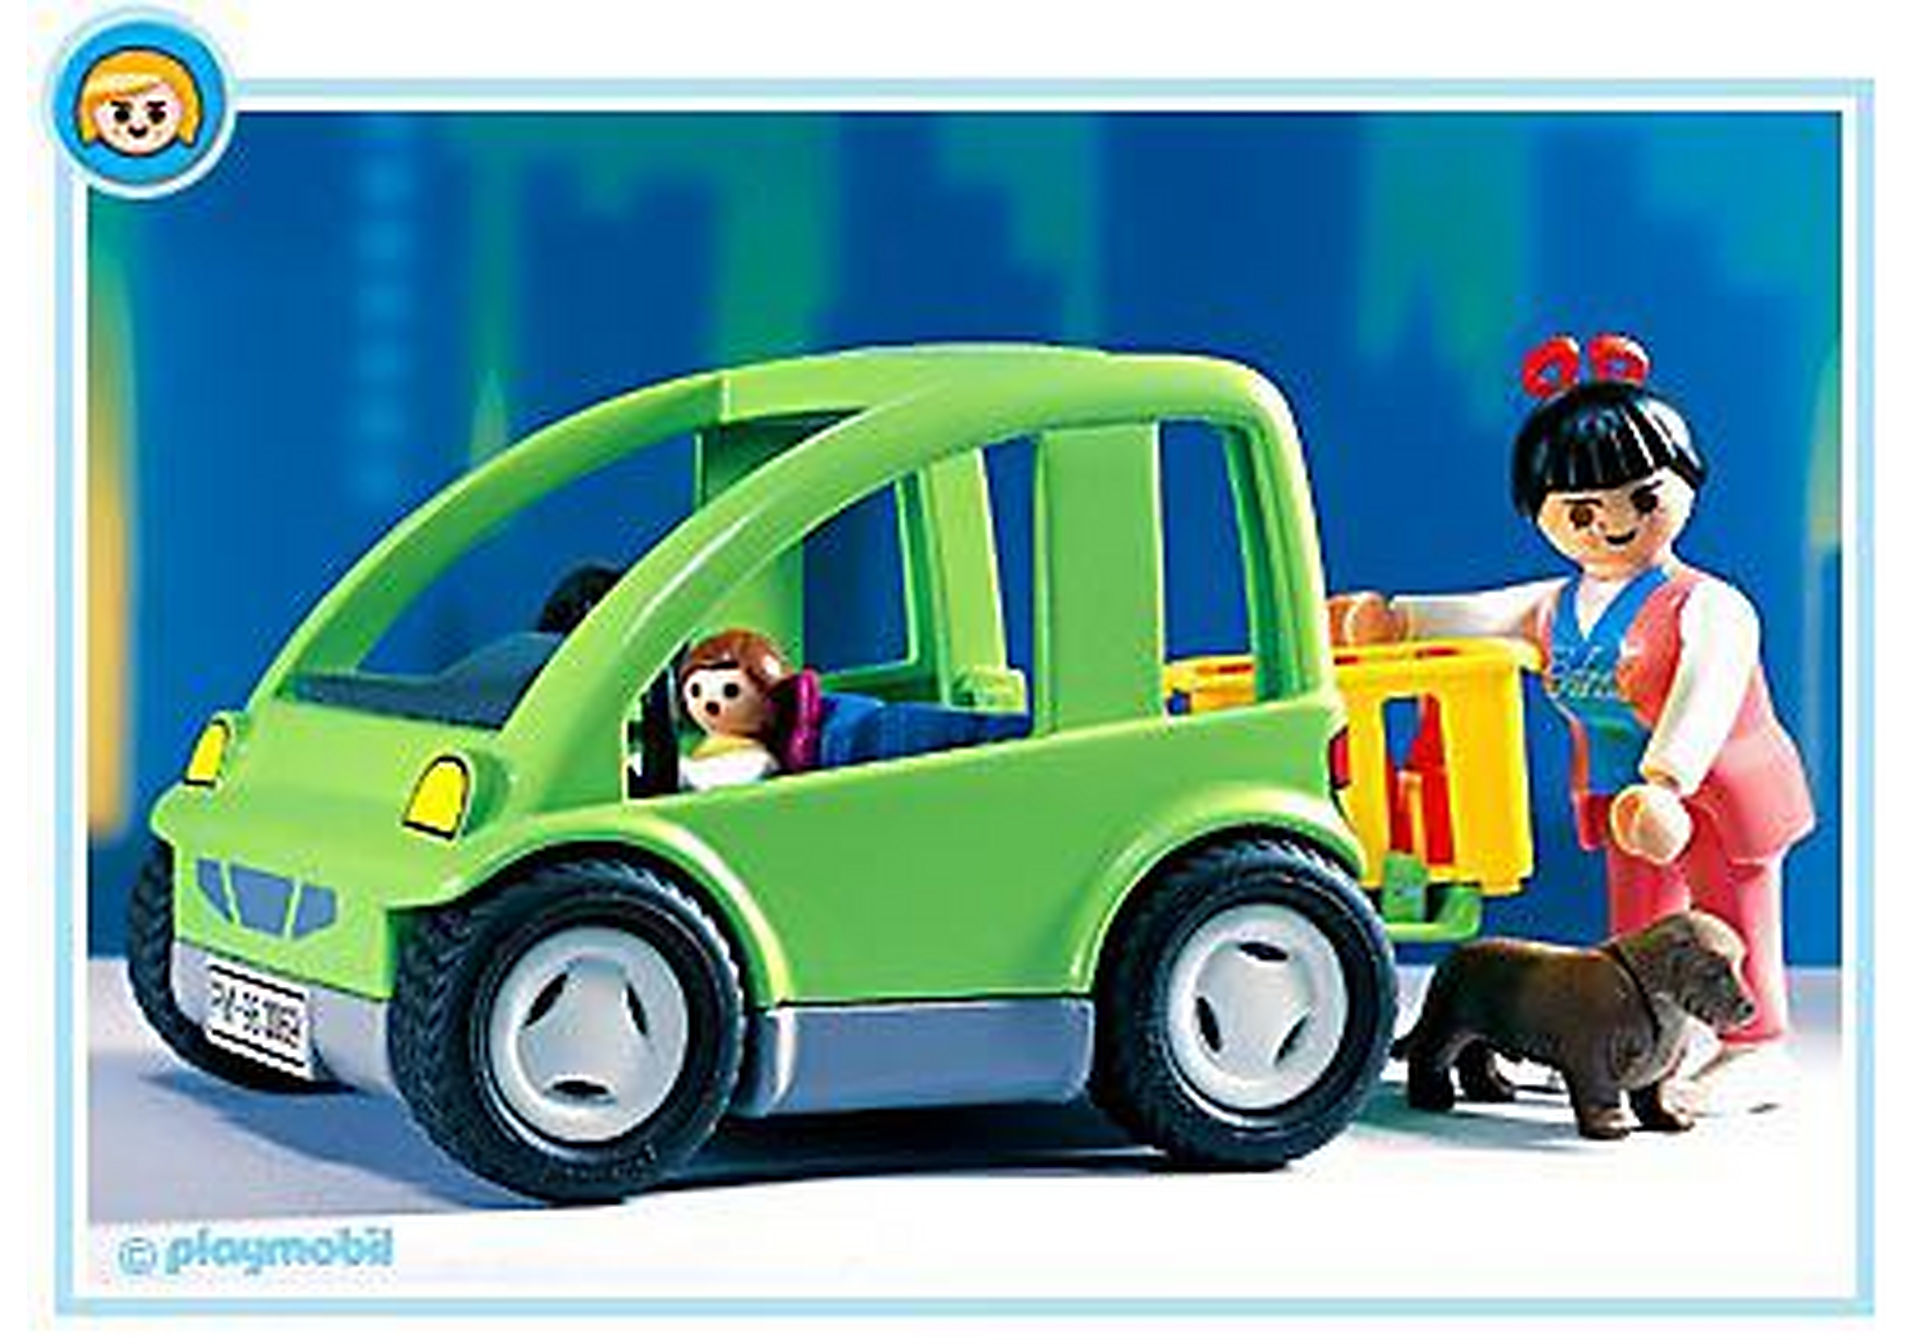 http://media.playmobil.com/i/playmobil/3069-A_product_detail/Voiture de ville